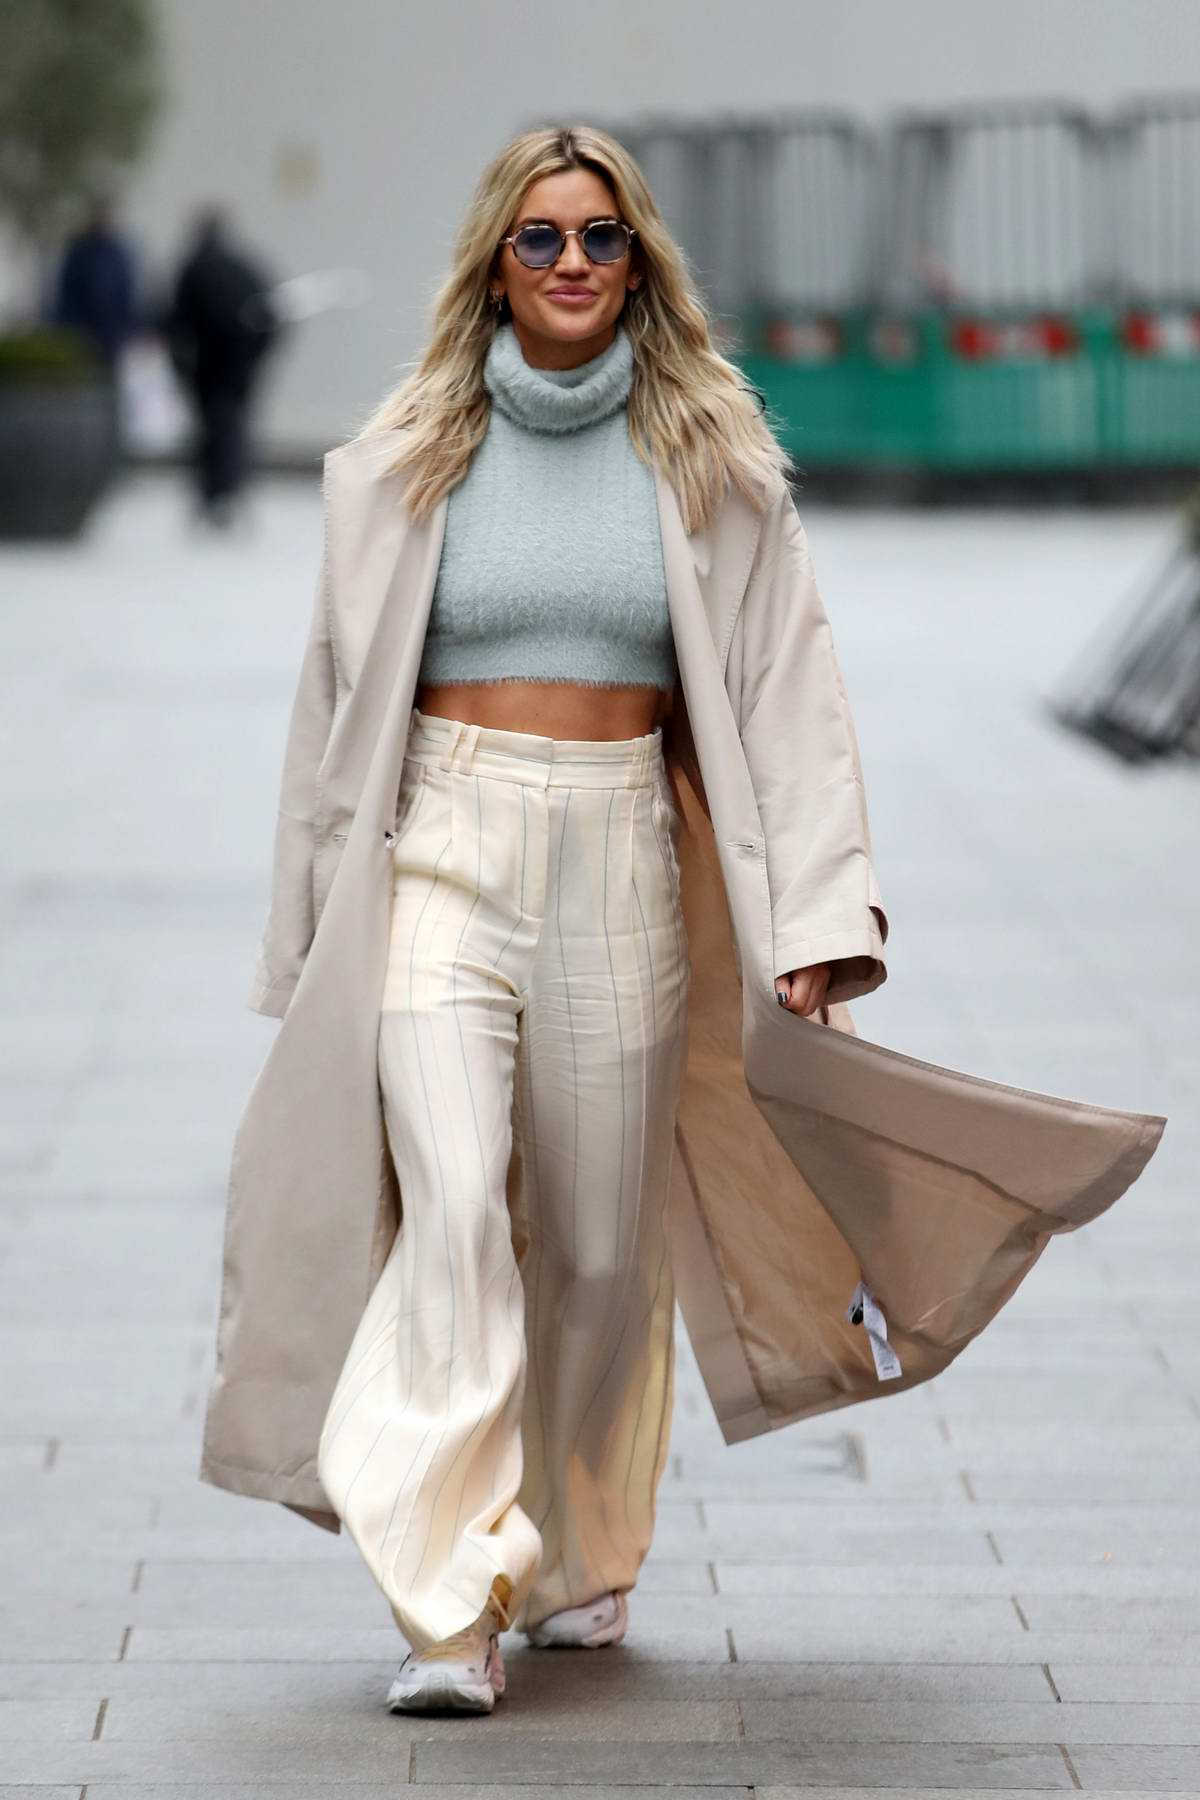 Ashley Roberts looks stylish as she leaves Global Radio Studios in London, UK